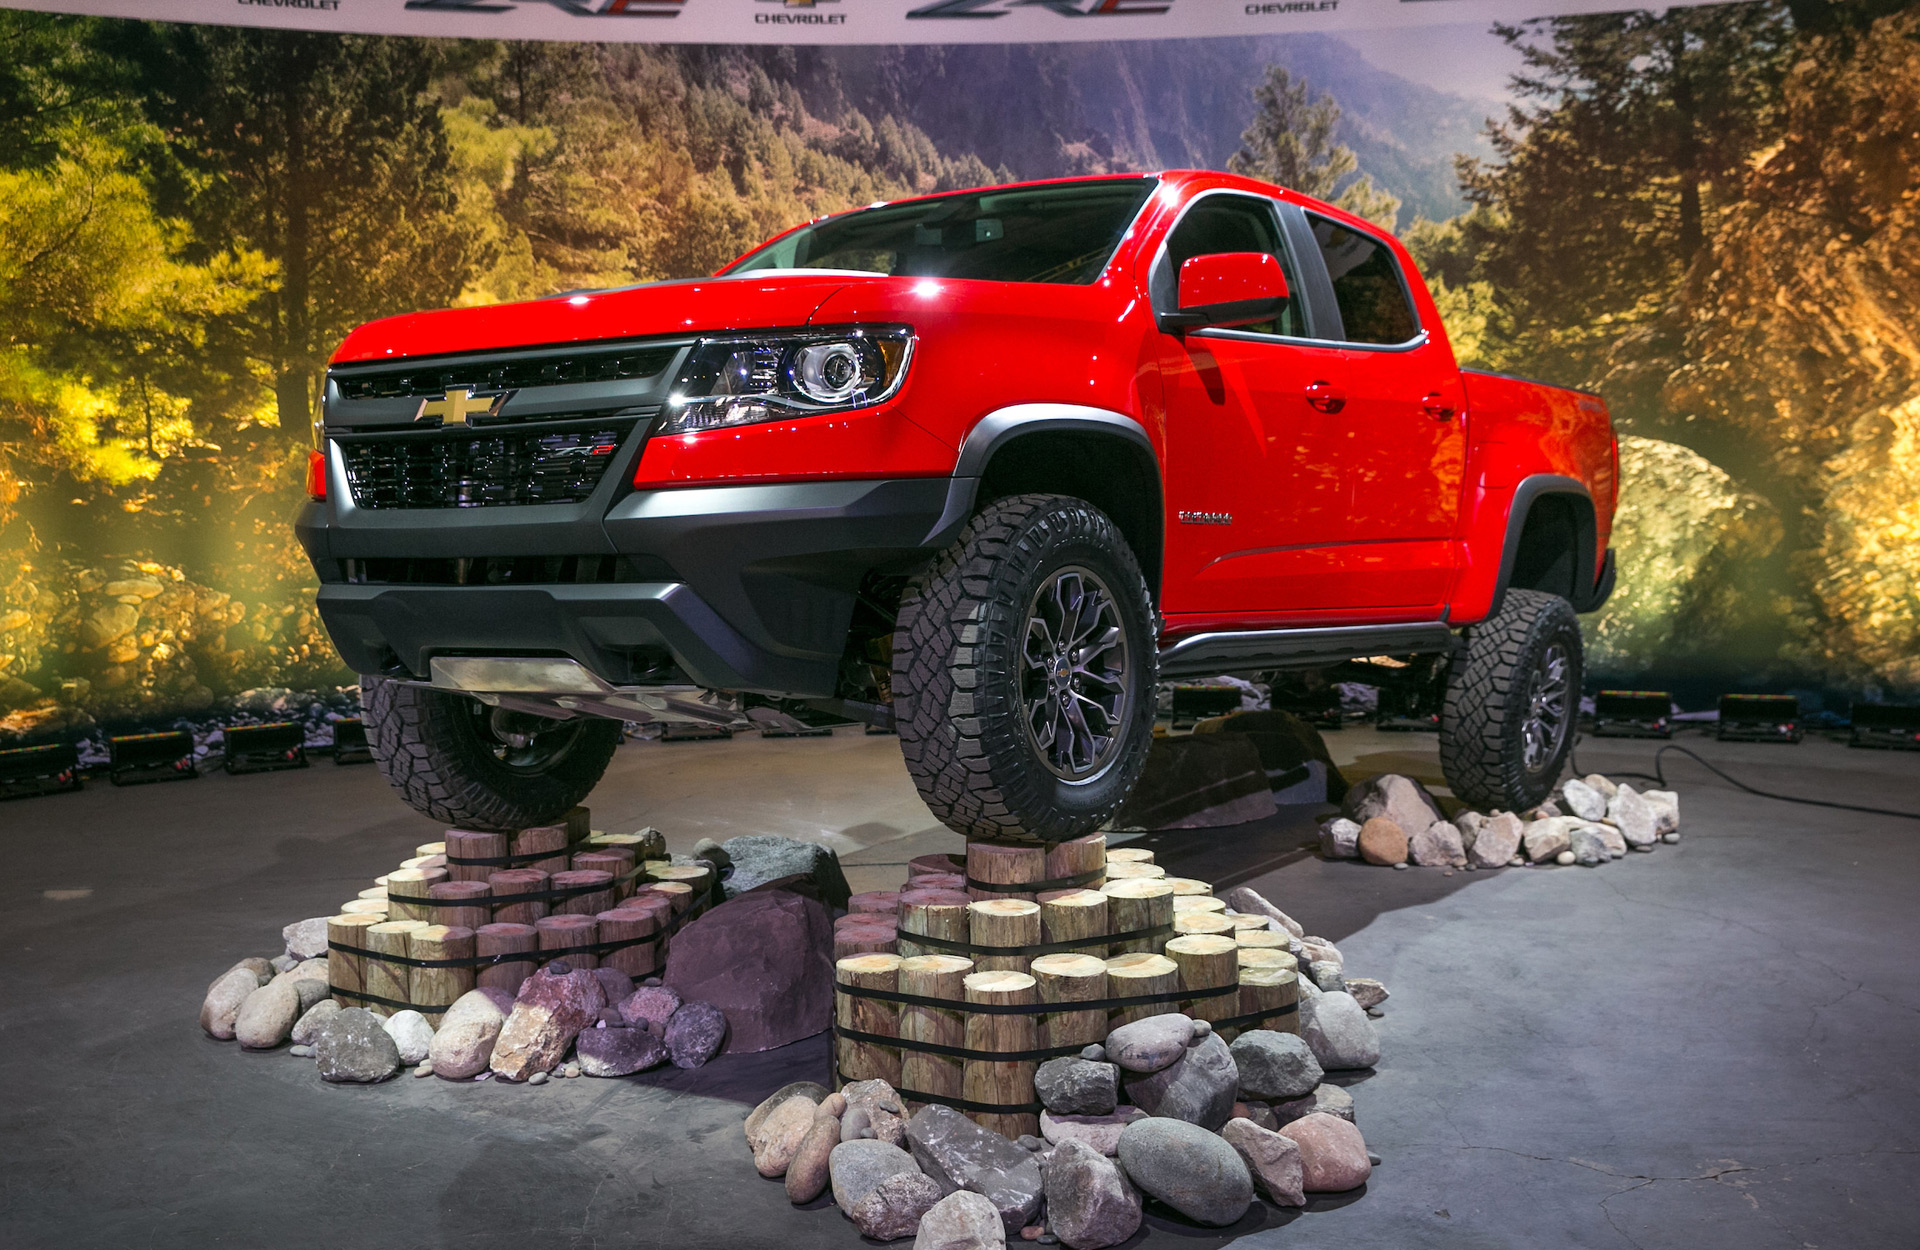 2017 Chevrolet Colorado ZR2 is your mid-size off-road truck